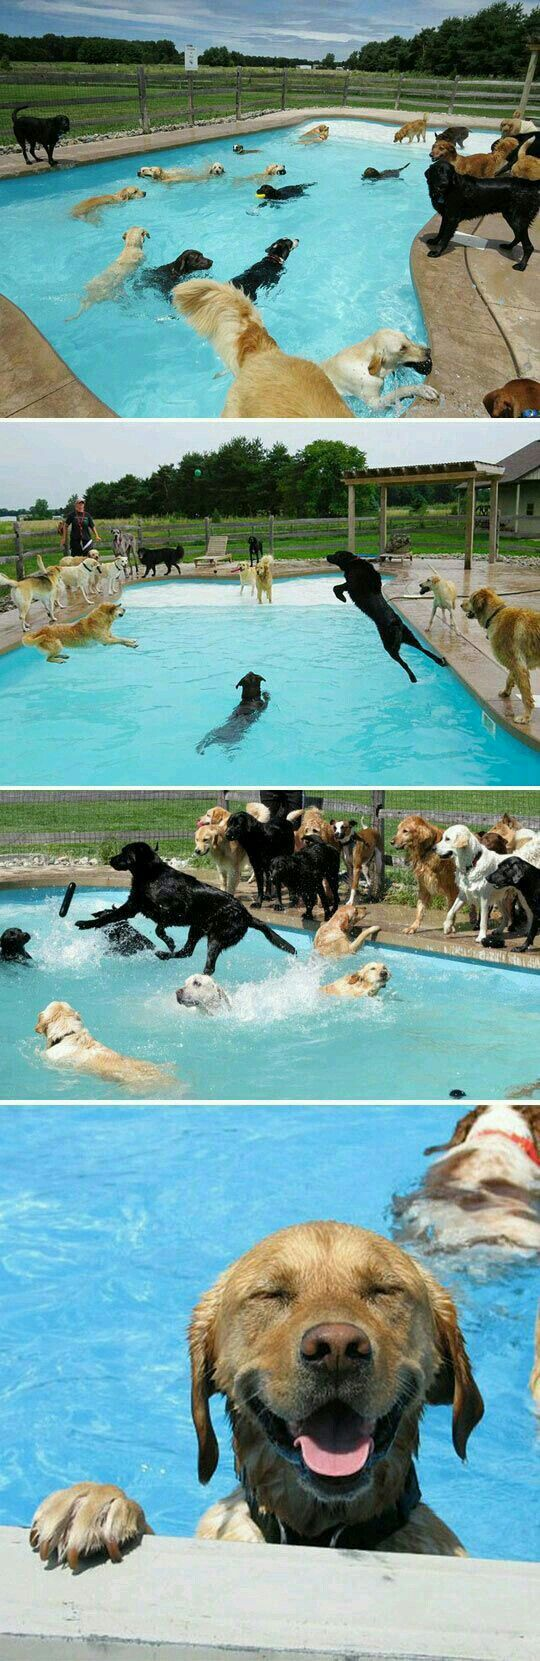 The Best pool EVER!!! First dog parks & now dog pools